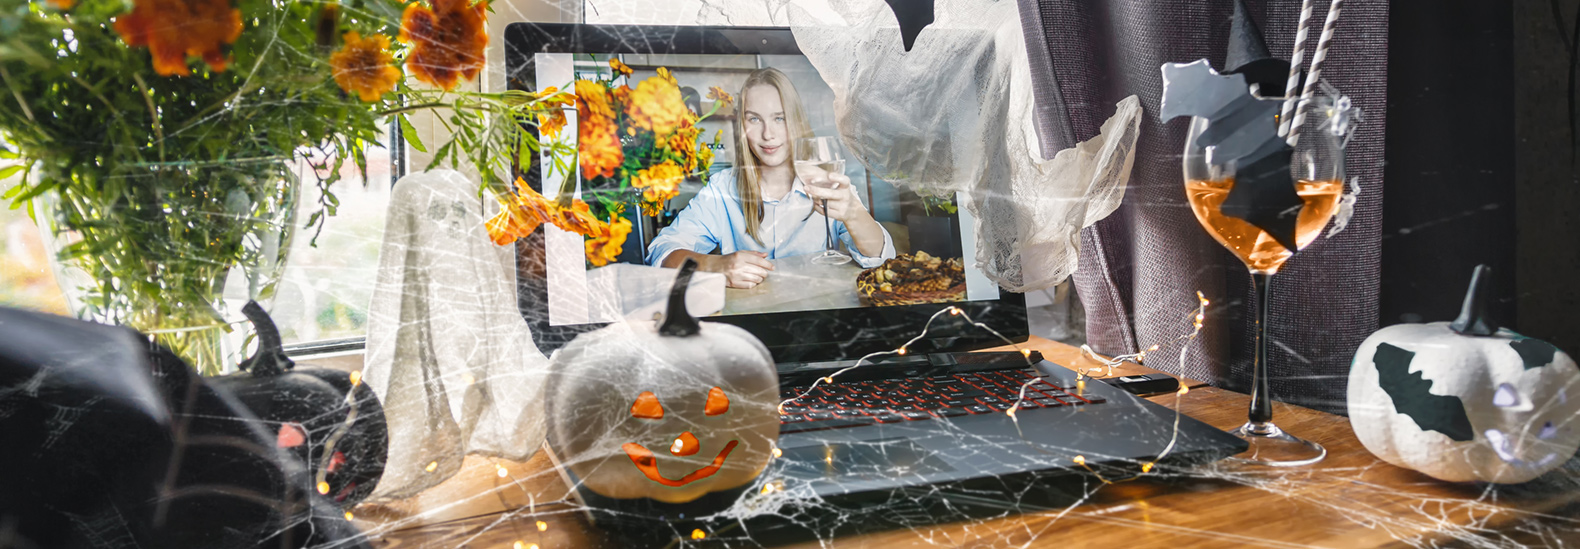 DIY Halloween costumes for this year's virtual parties